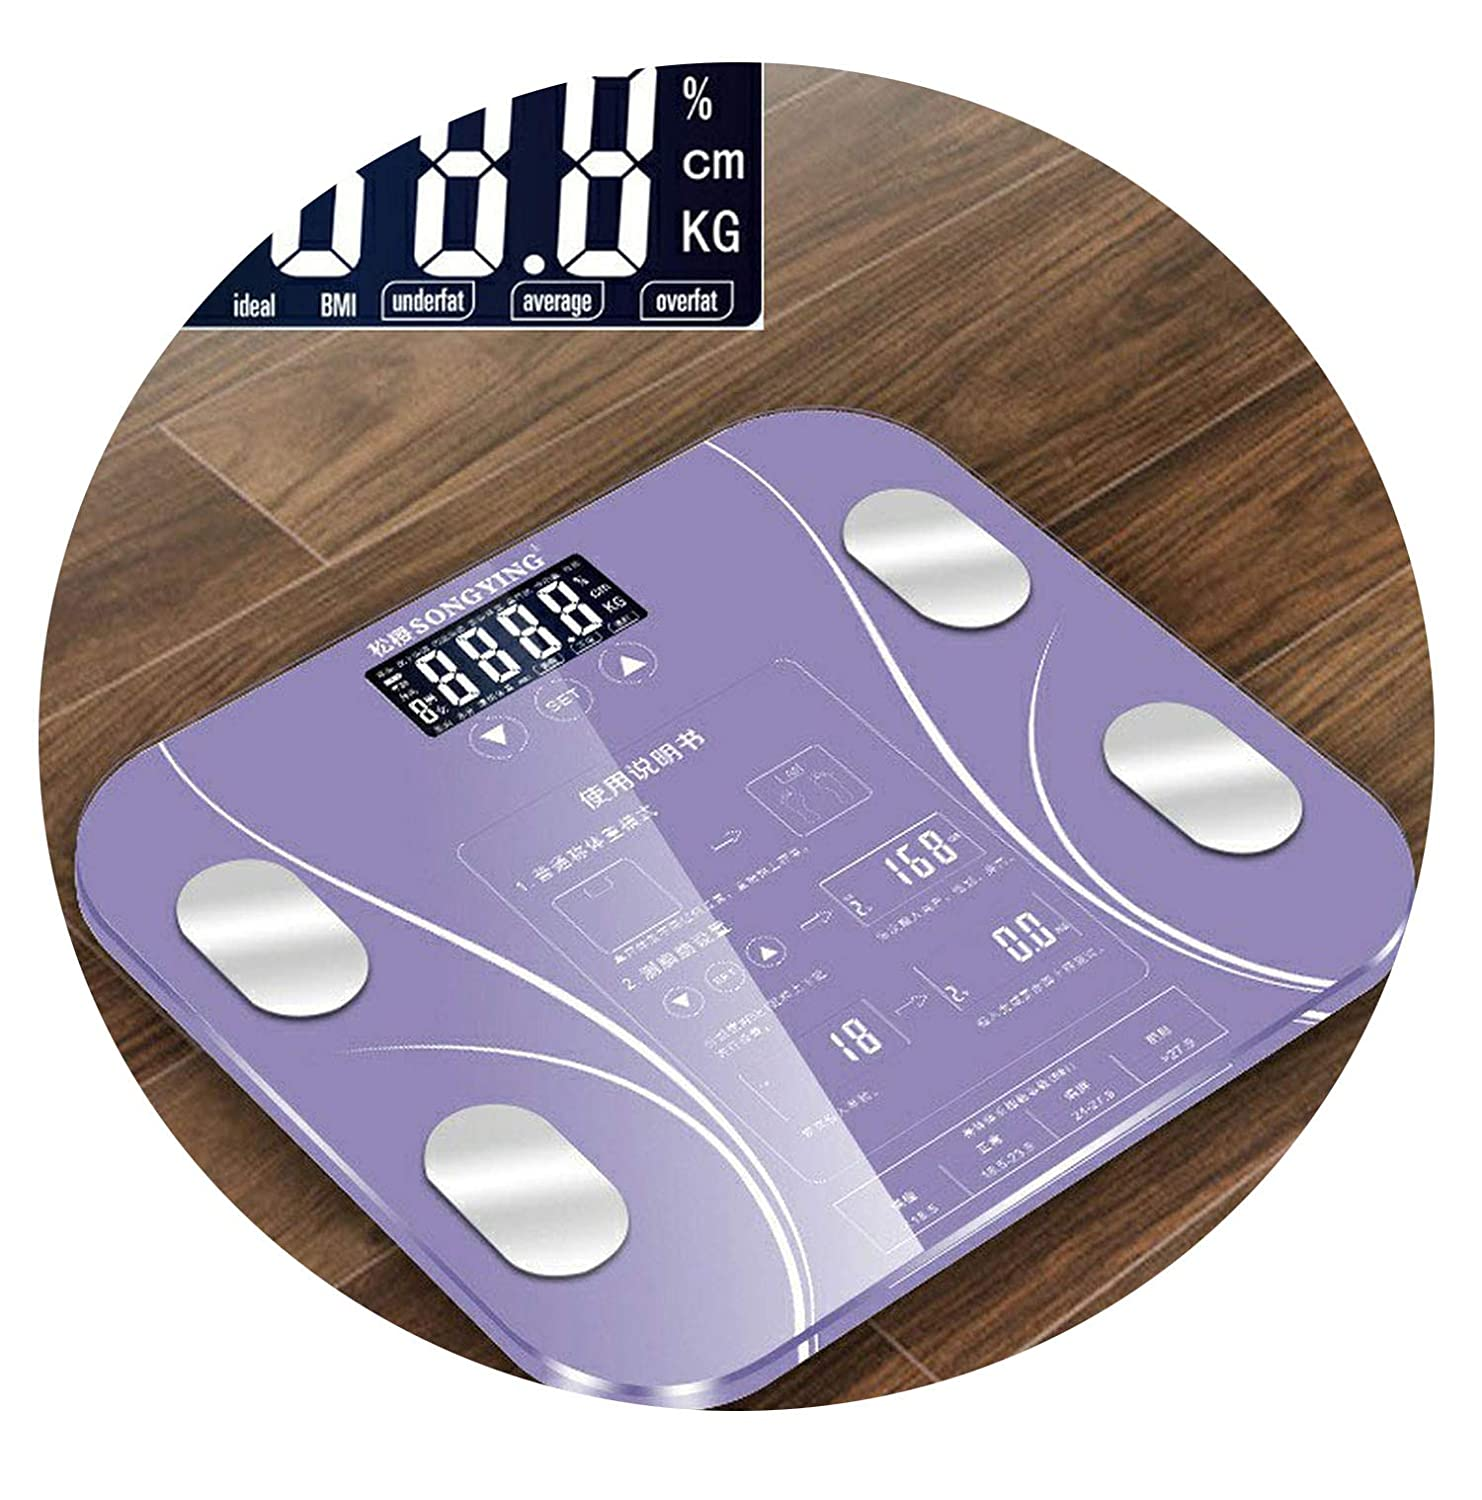 Amazon.com: Hot 13 Body Index Electronic Smart Weighing Scales Bathroom Body Fat bmi Scale Digital Human Weight Mi Scales Floor LCD Display,Black 2: Health ...